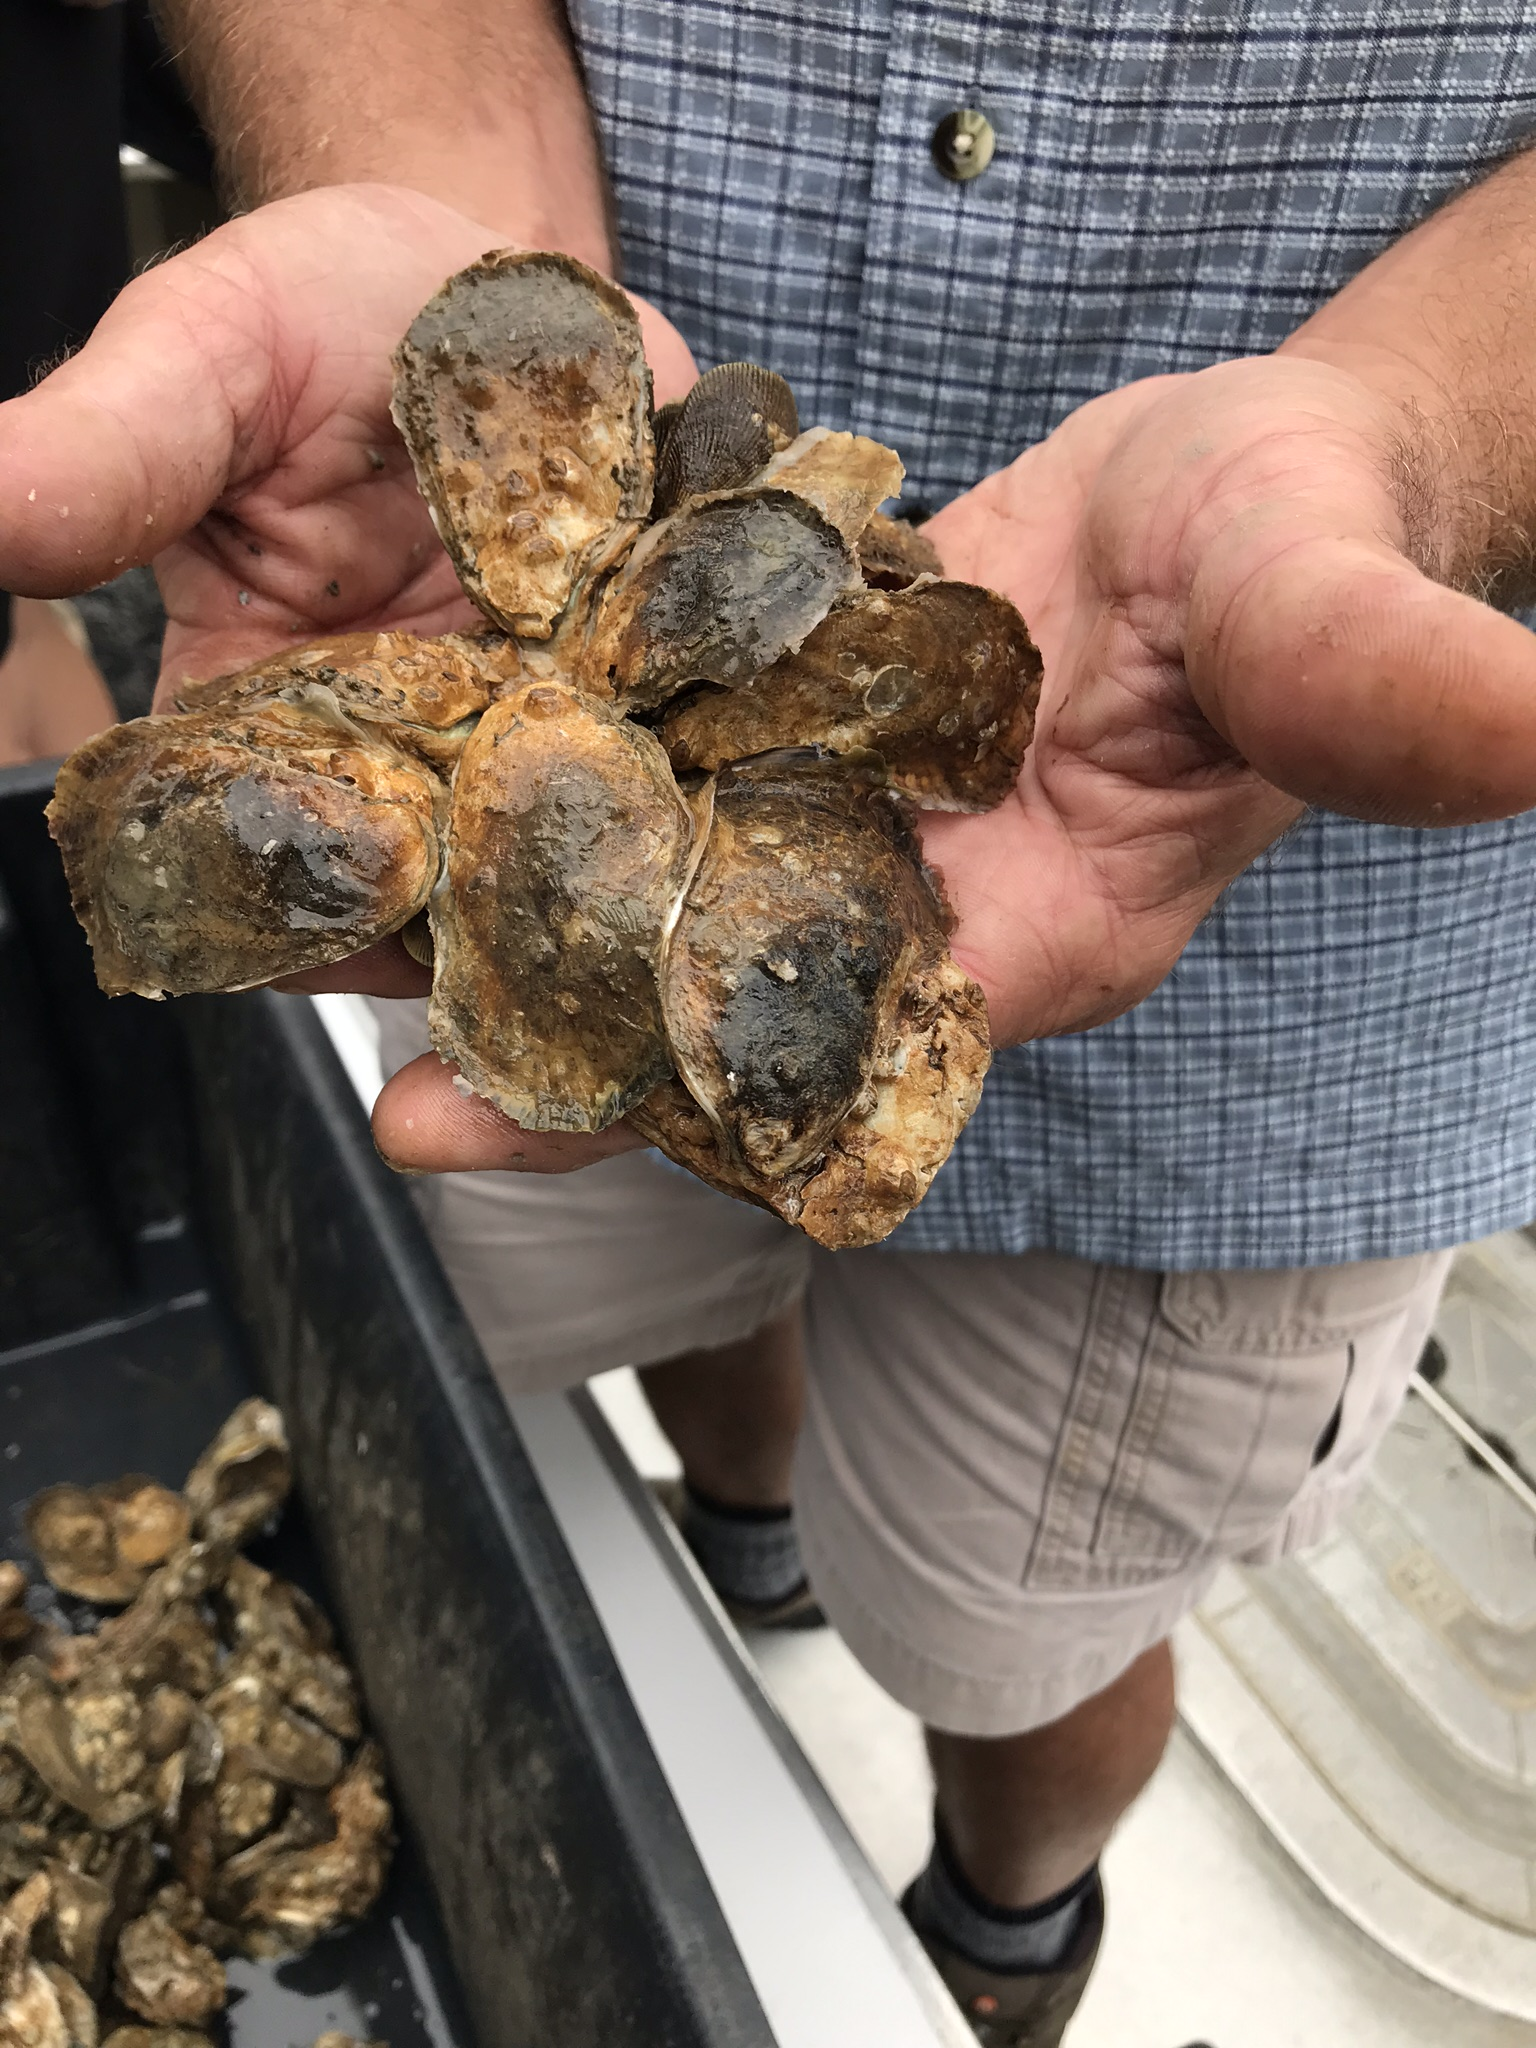 A grouping of Oysters pulled from the water.